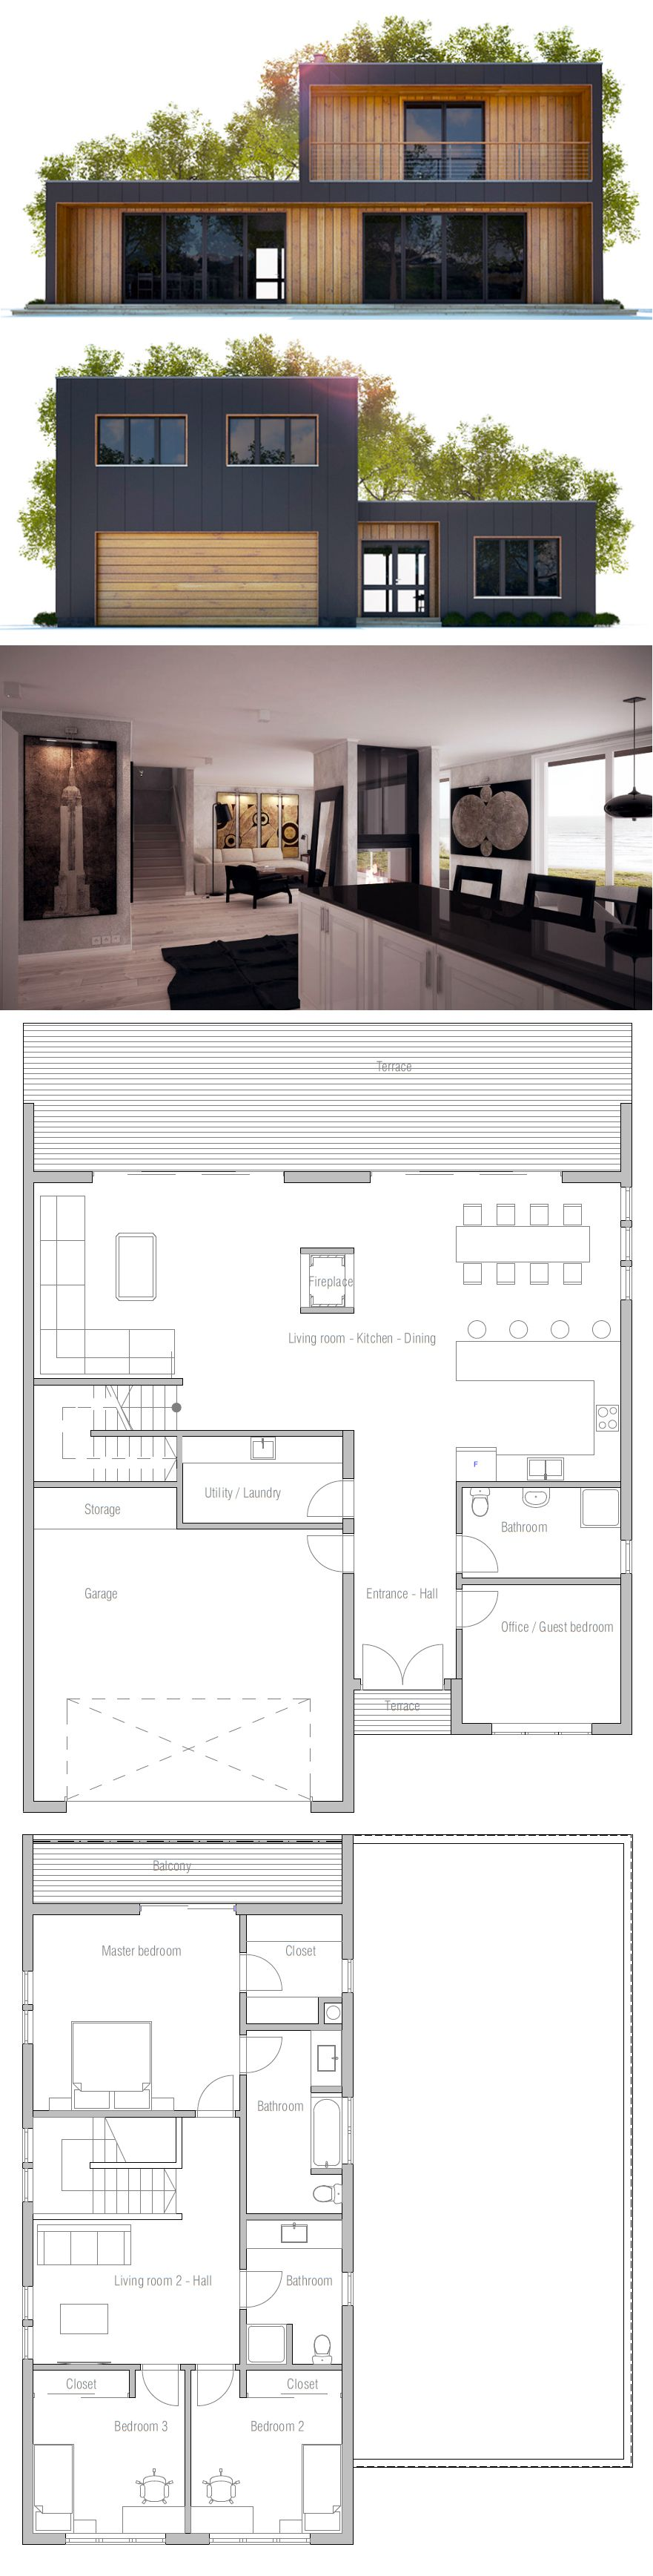 Houses Plans Home Decoration Interior Home Decorating